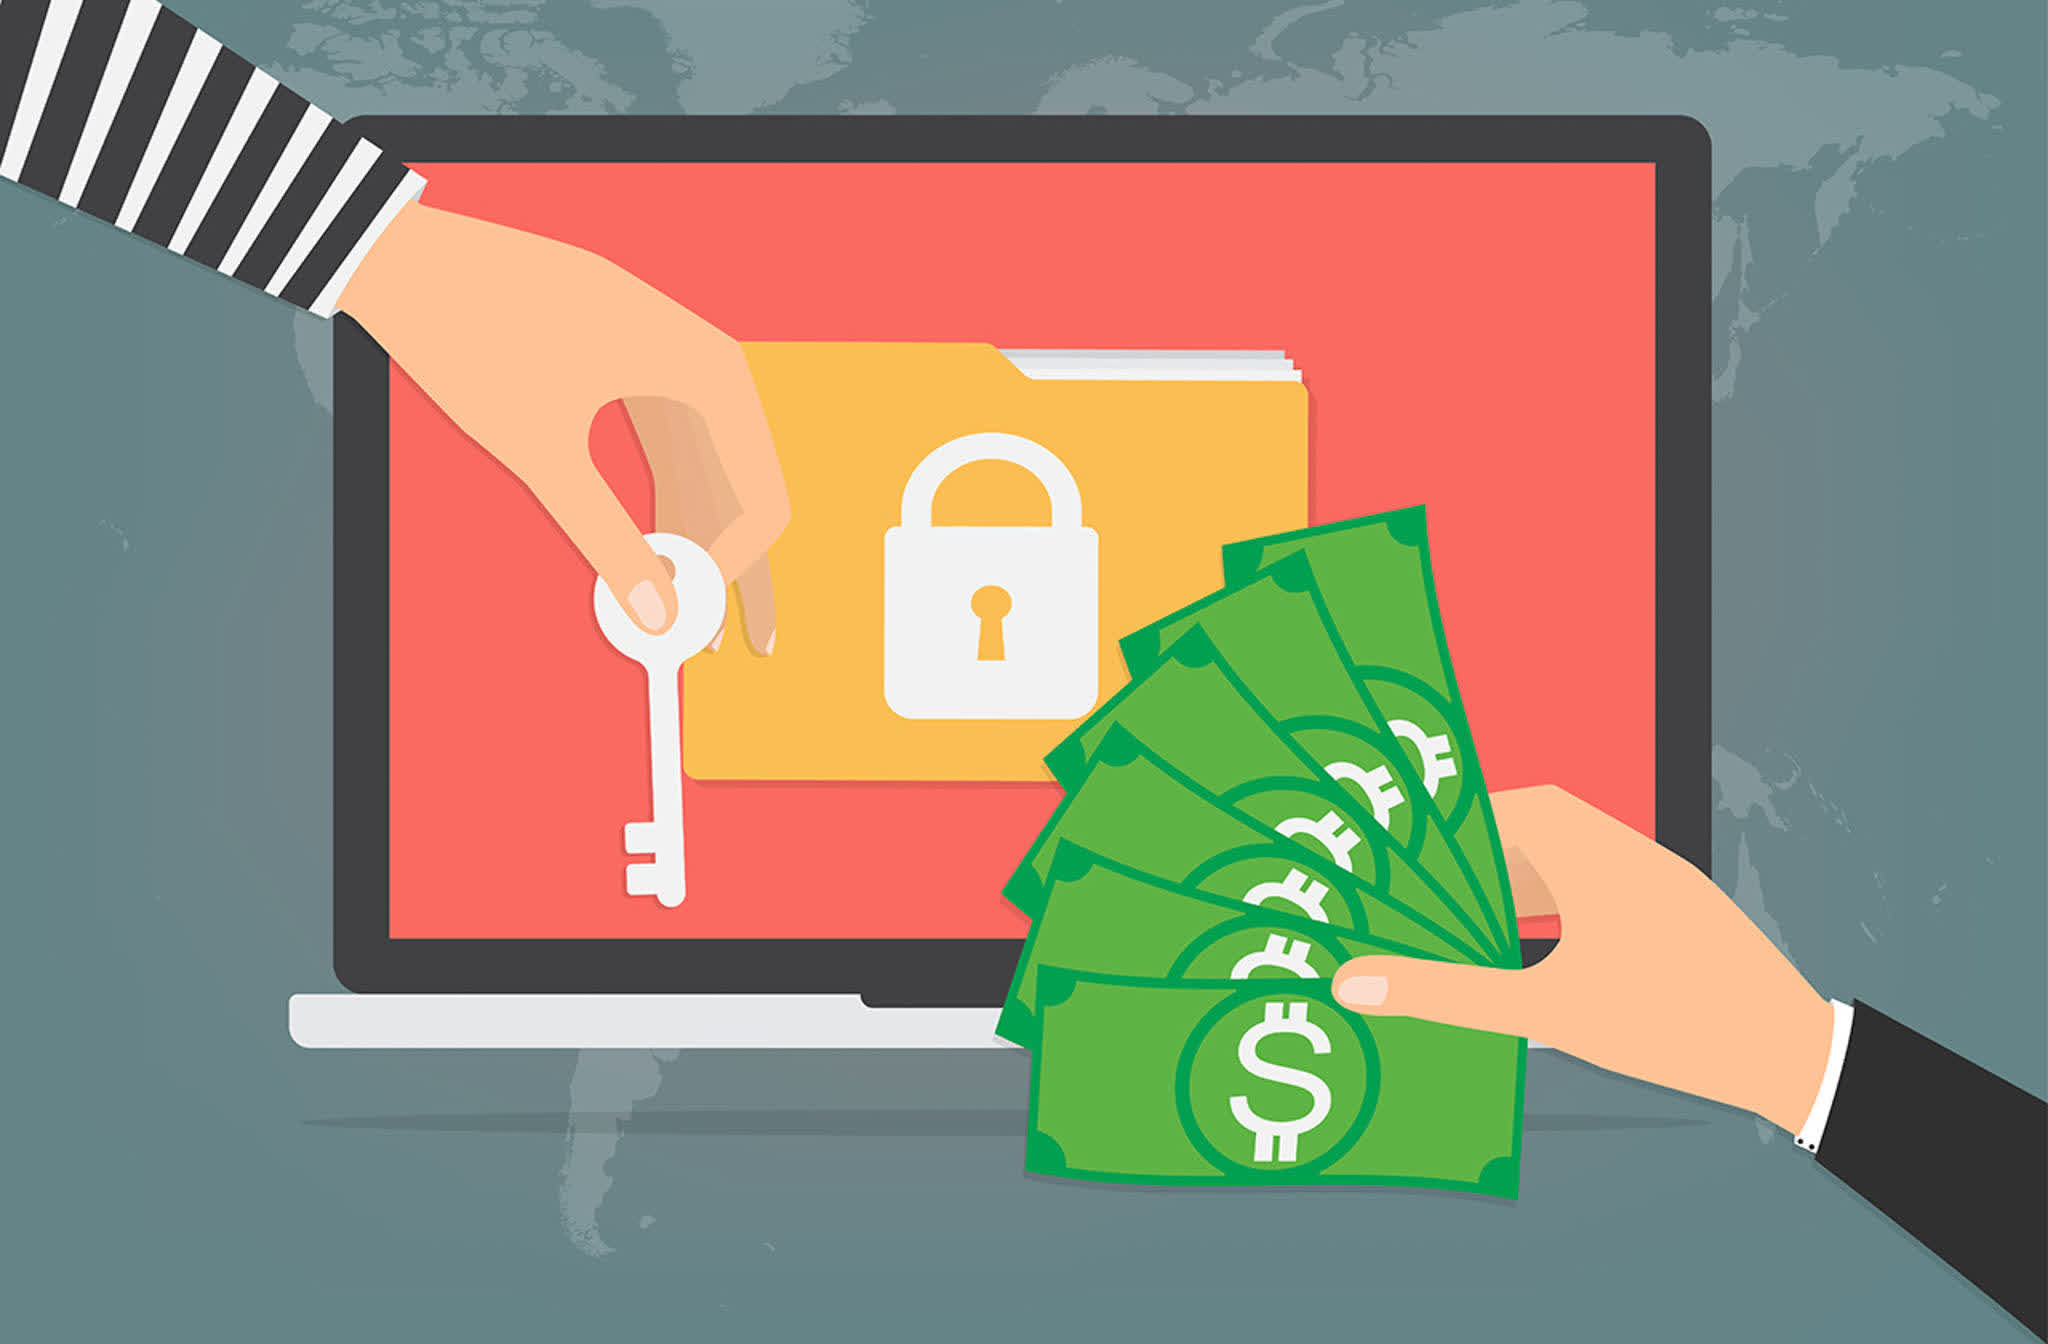 Over 41 percent of cyber insurance claims in 2020 came from ransomware attacks